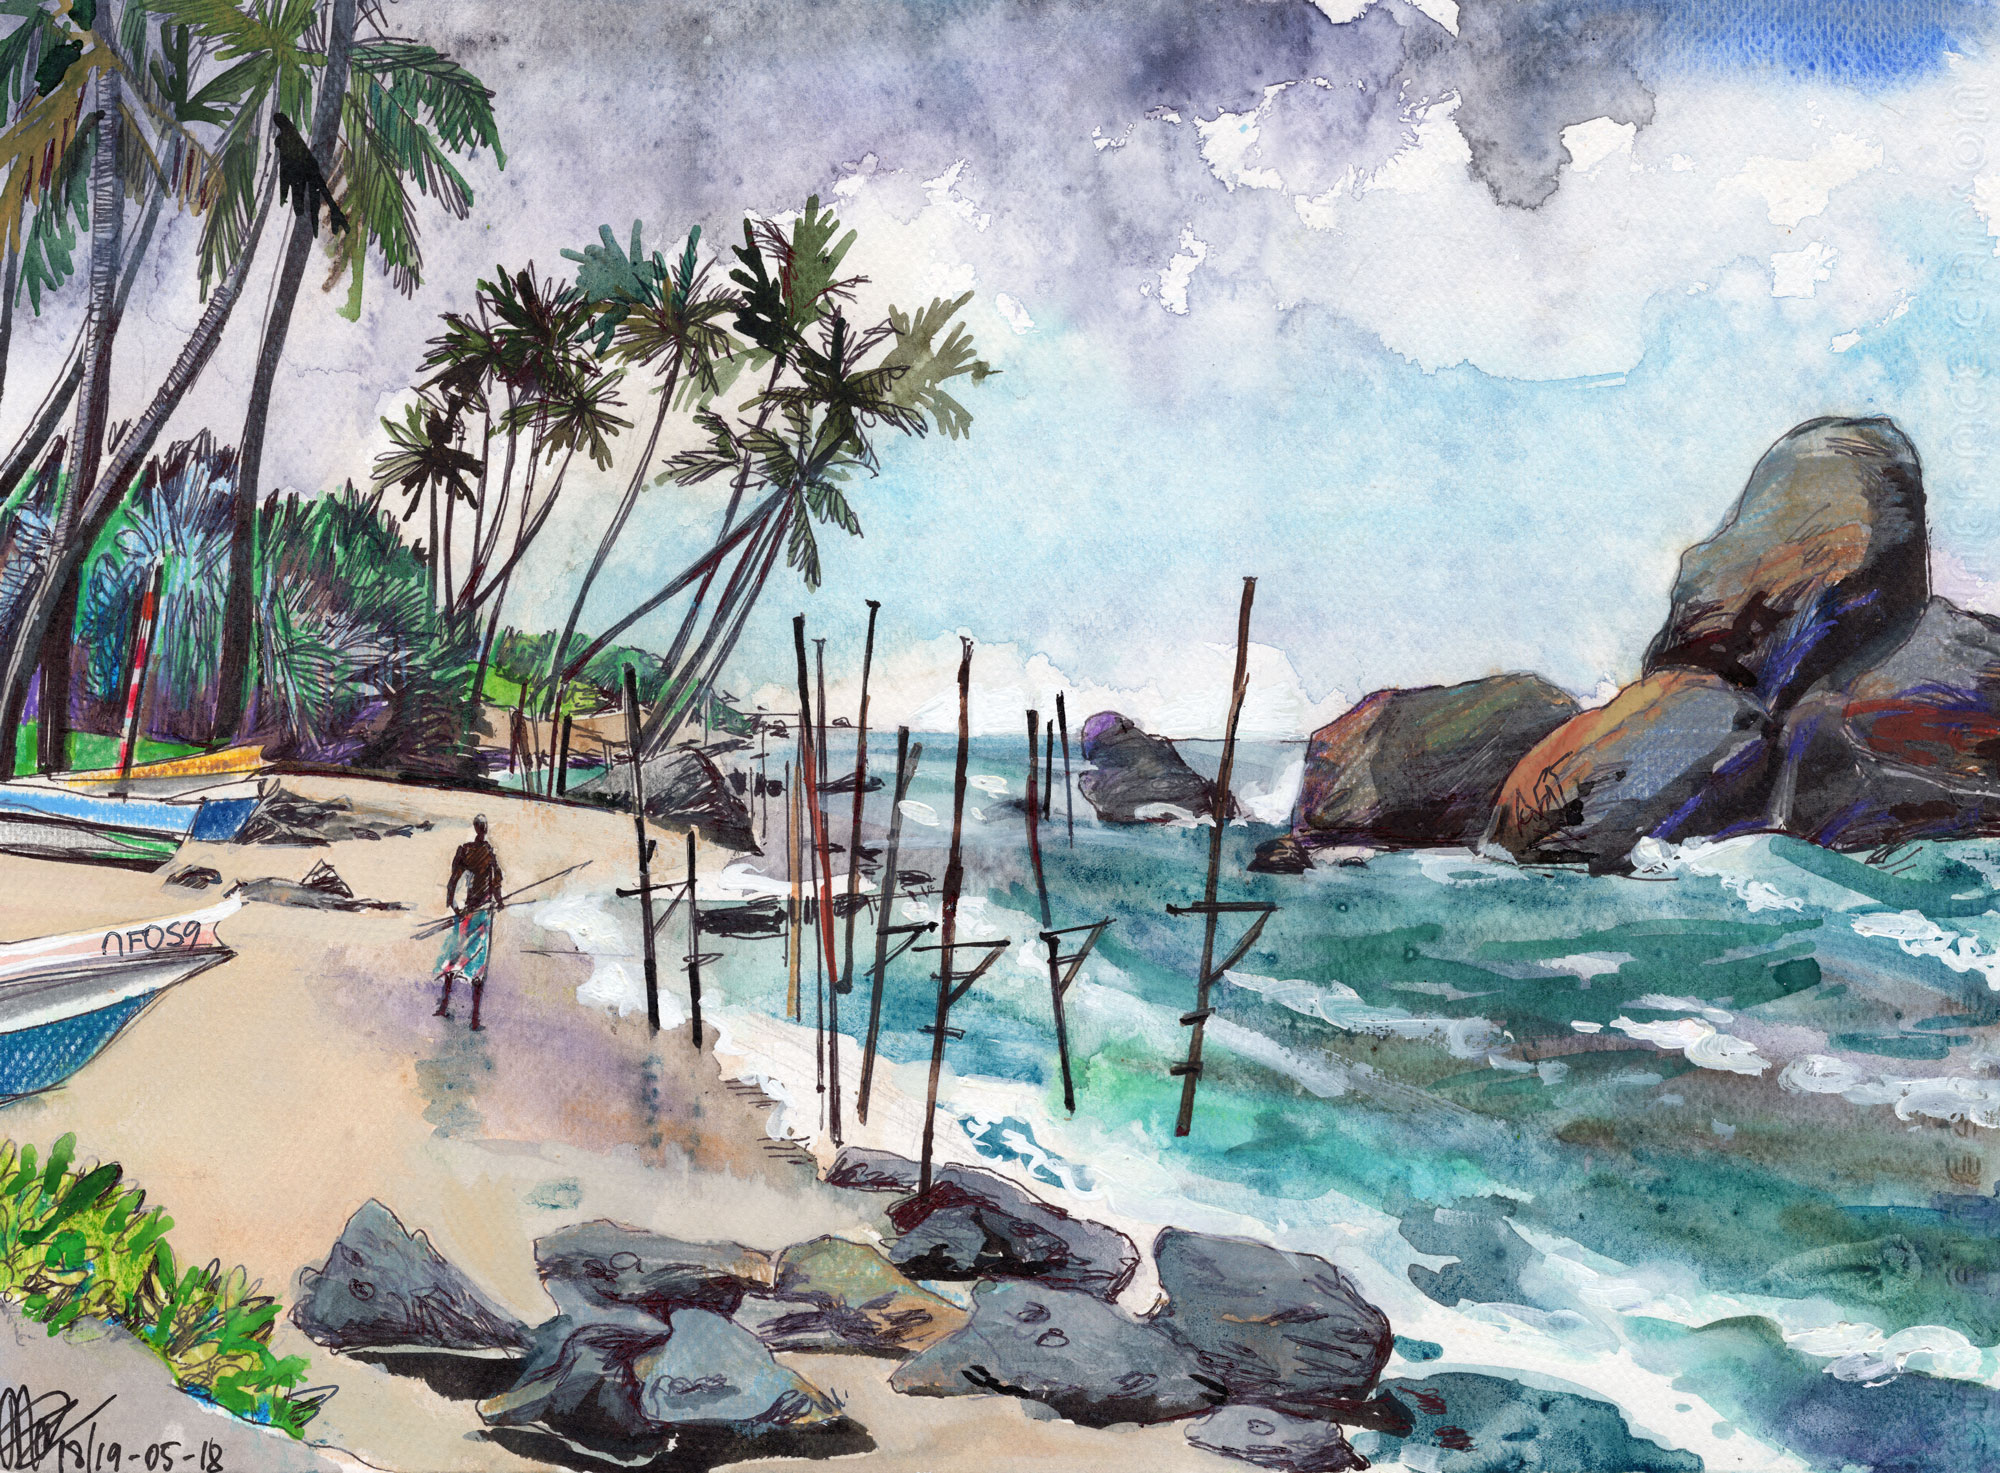 3. Stick fishermen on Ahangama beach in monsoon season. Watercolours, ink, colour pencils Original size 25cm x 35cm